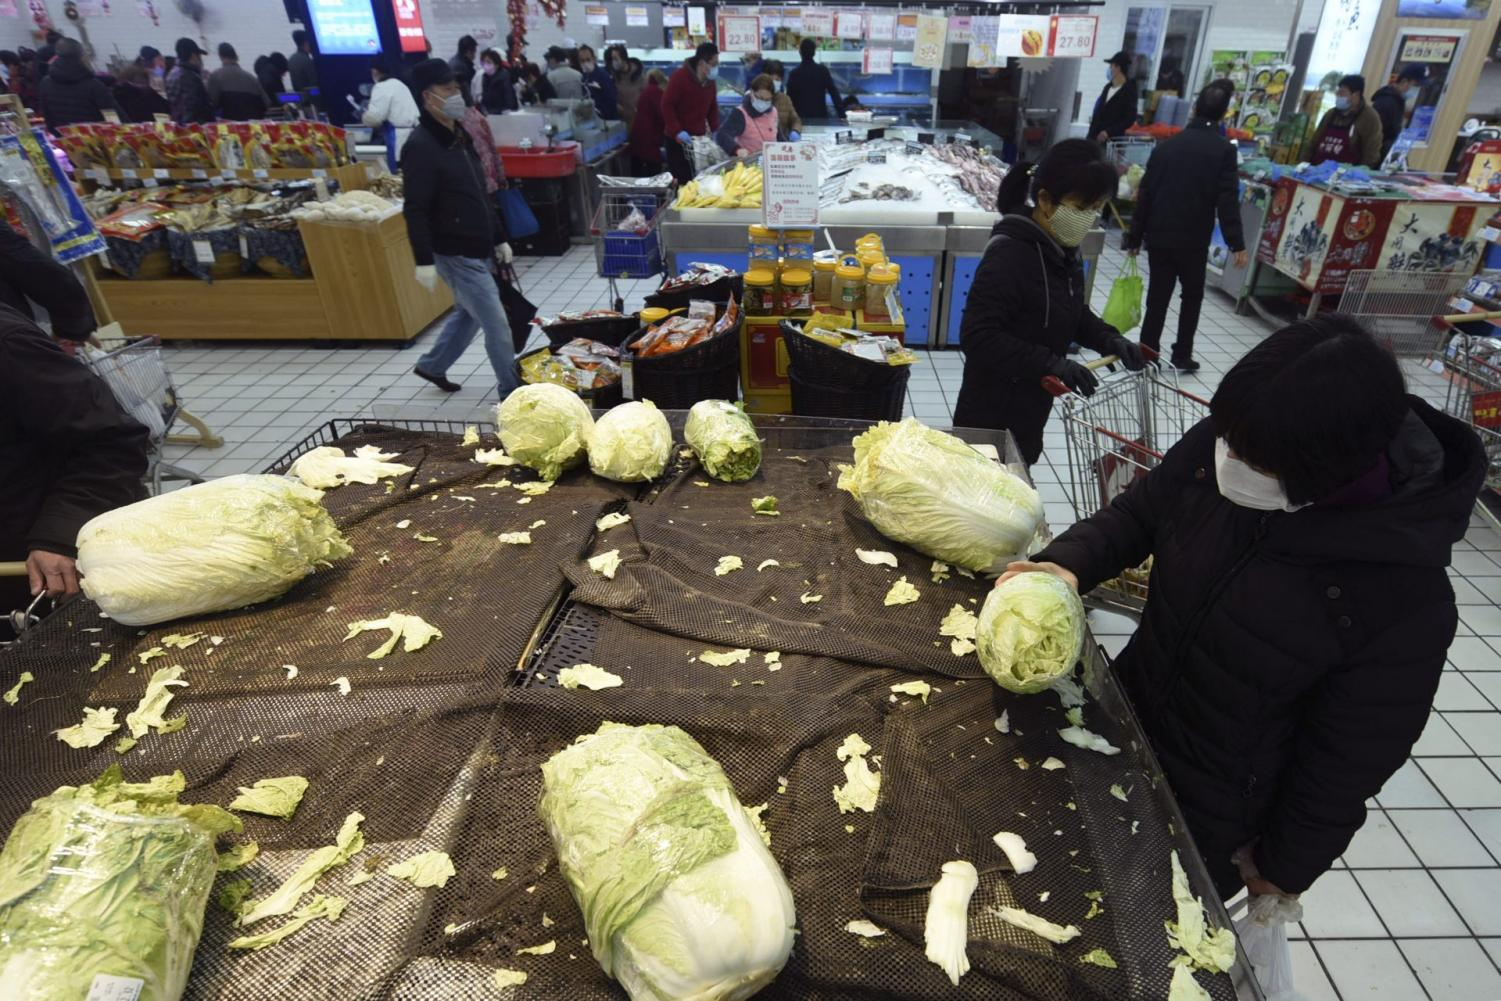 A woman, right, wears a face mask selects cabbage at a supermarket in Hangzhou in east China's Zhejiang province, Saturday, Feb. 8, 2020. China's communist leaders are striving to keep food flowing to crowded cities despite anti-disease controls, to quell fears of possible shortages and stave off price spikes from panic buying after most access to Wuhan was cut off Jan. 23. Food stocks in supermarkets ran low shortly after Beijing imposed travel curbs and extended the Lunar New Year holiday to keep factories, offices and other businesses closed and the public at home, attempting to prevent the virus from spreading.